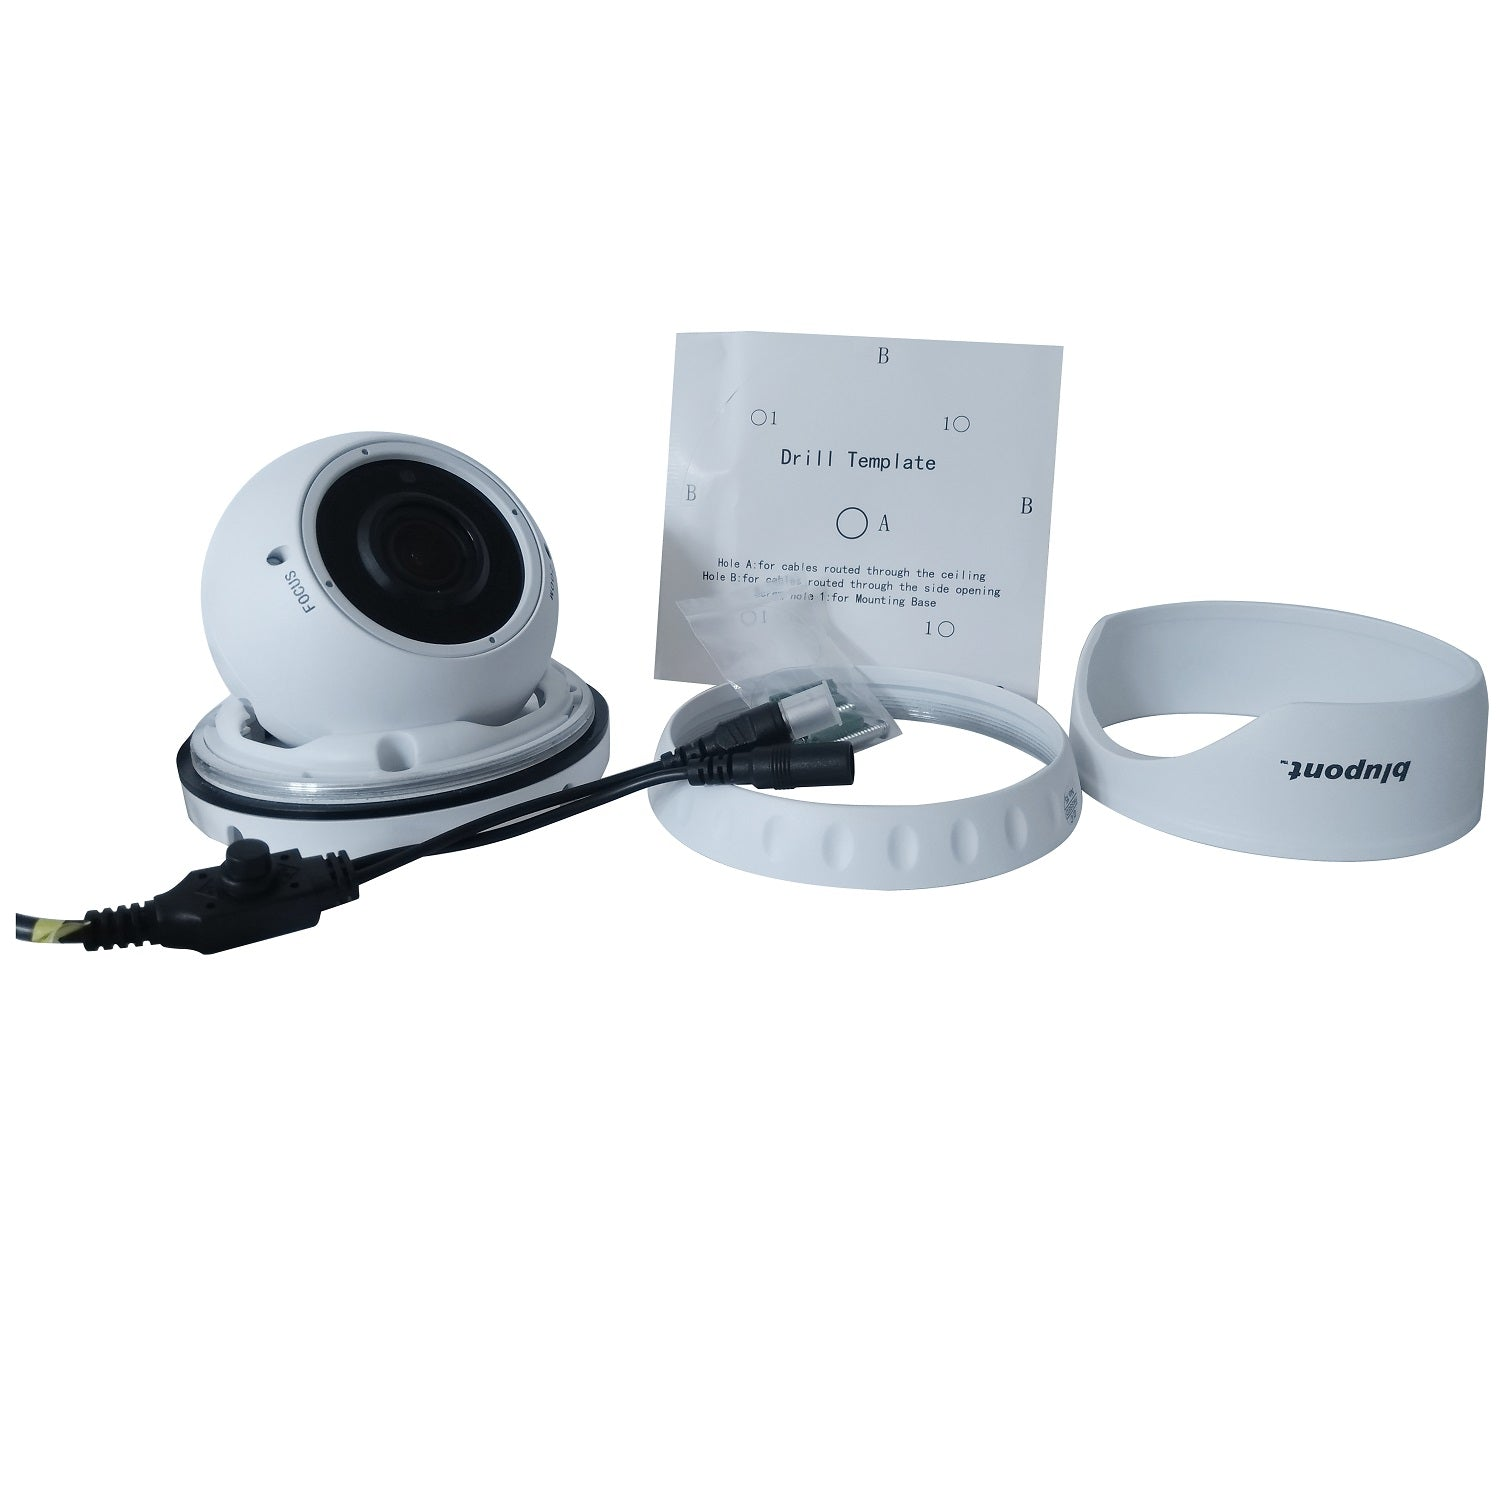 b-secure 2.1MP 1080P/960H 4in1 White Dome CCTV Camera - Varifocal